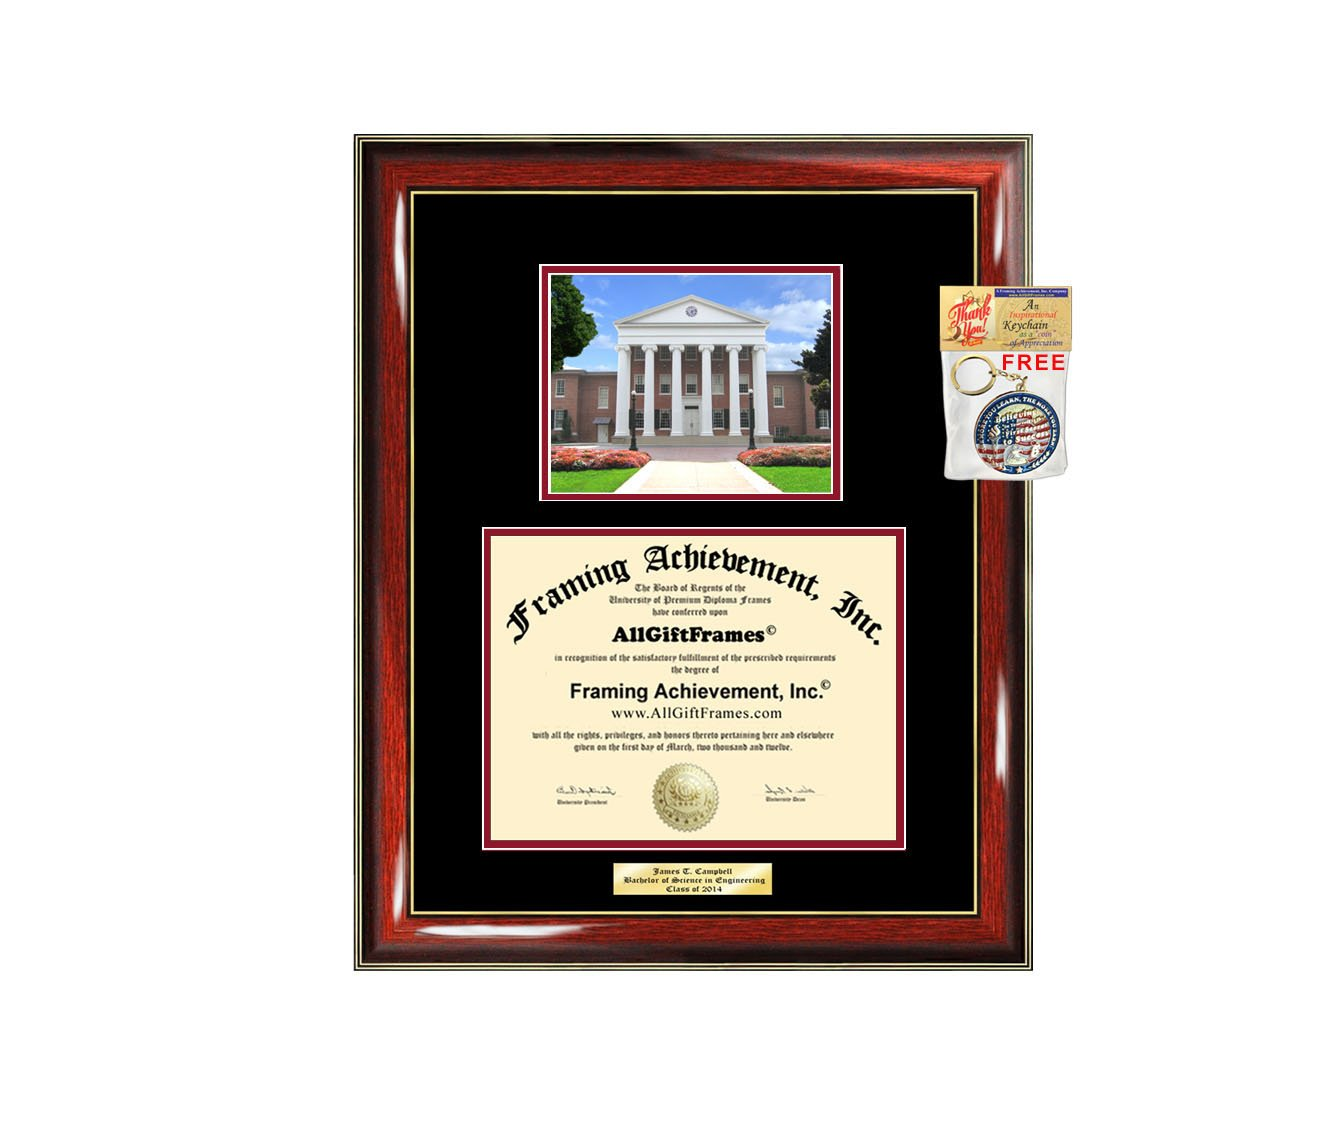 Diploma Frame University of Mississippi ole Miss Graduation Gift Idea Engraved Picture Frames Engraving Degree Graduate Bachelor Masters MBA PHD Doctorate School